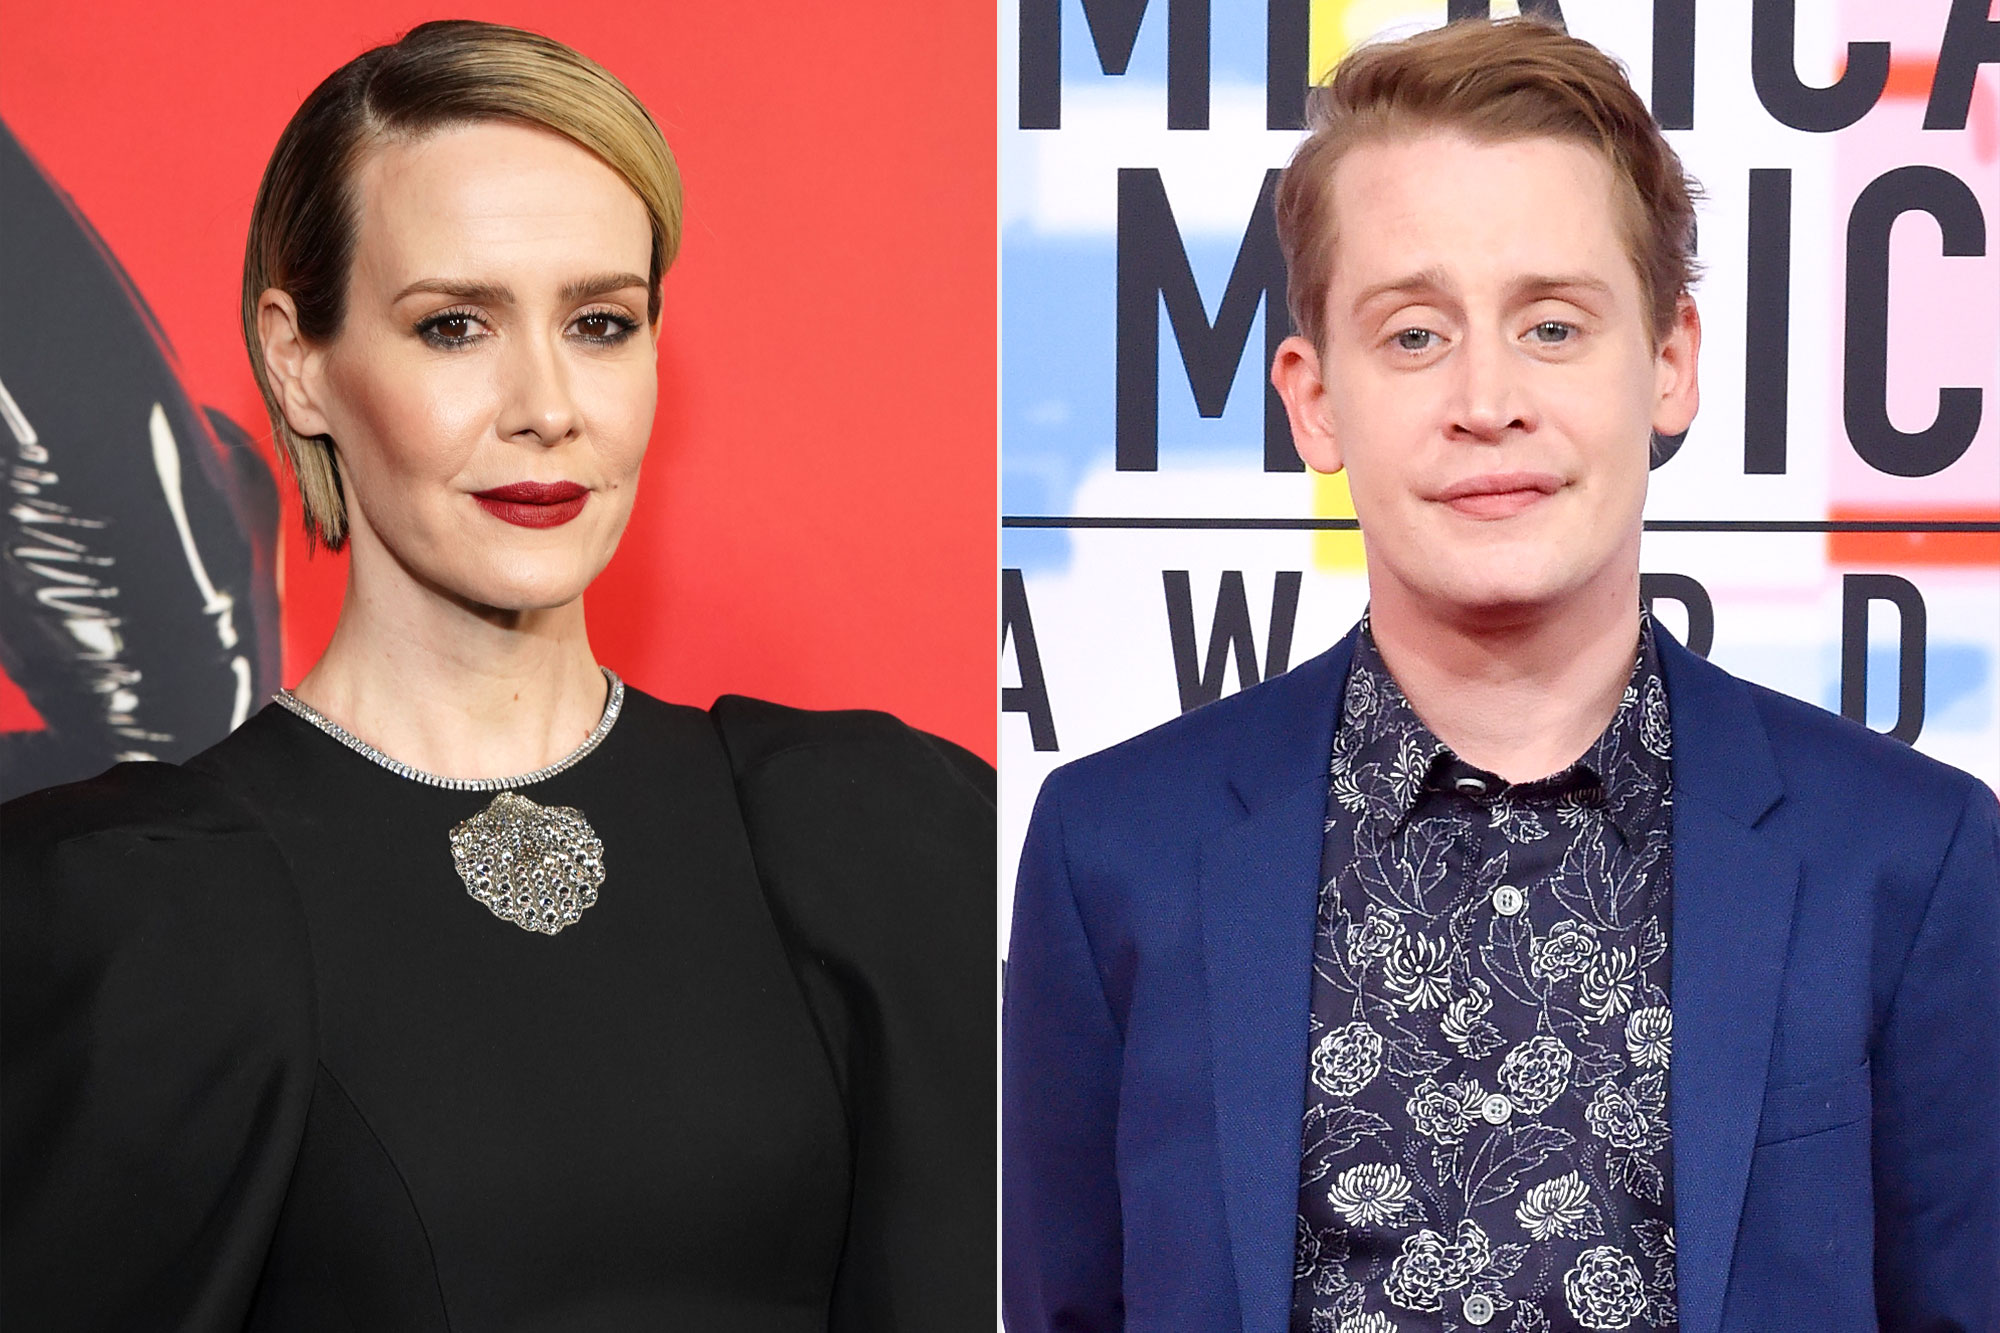 Sarah Paulson and Macaulay Culkin